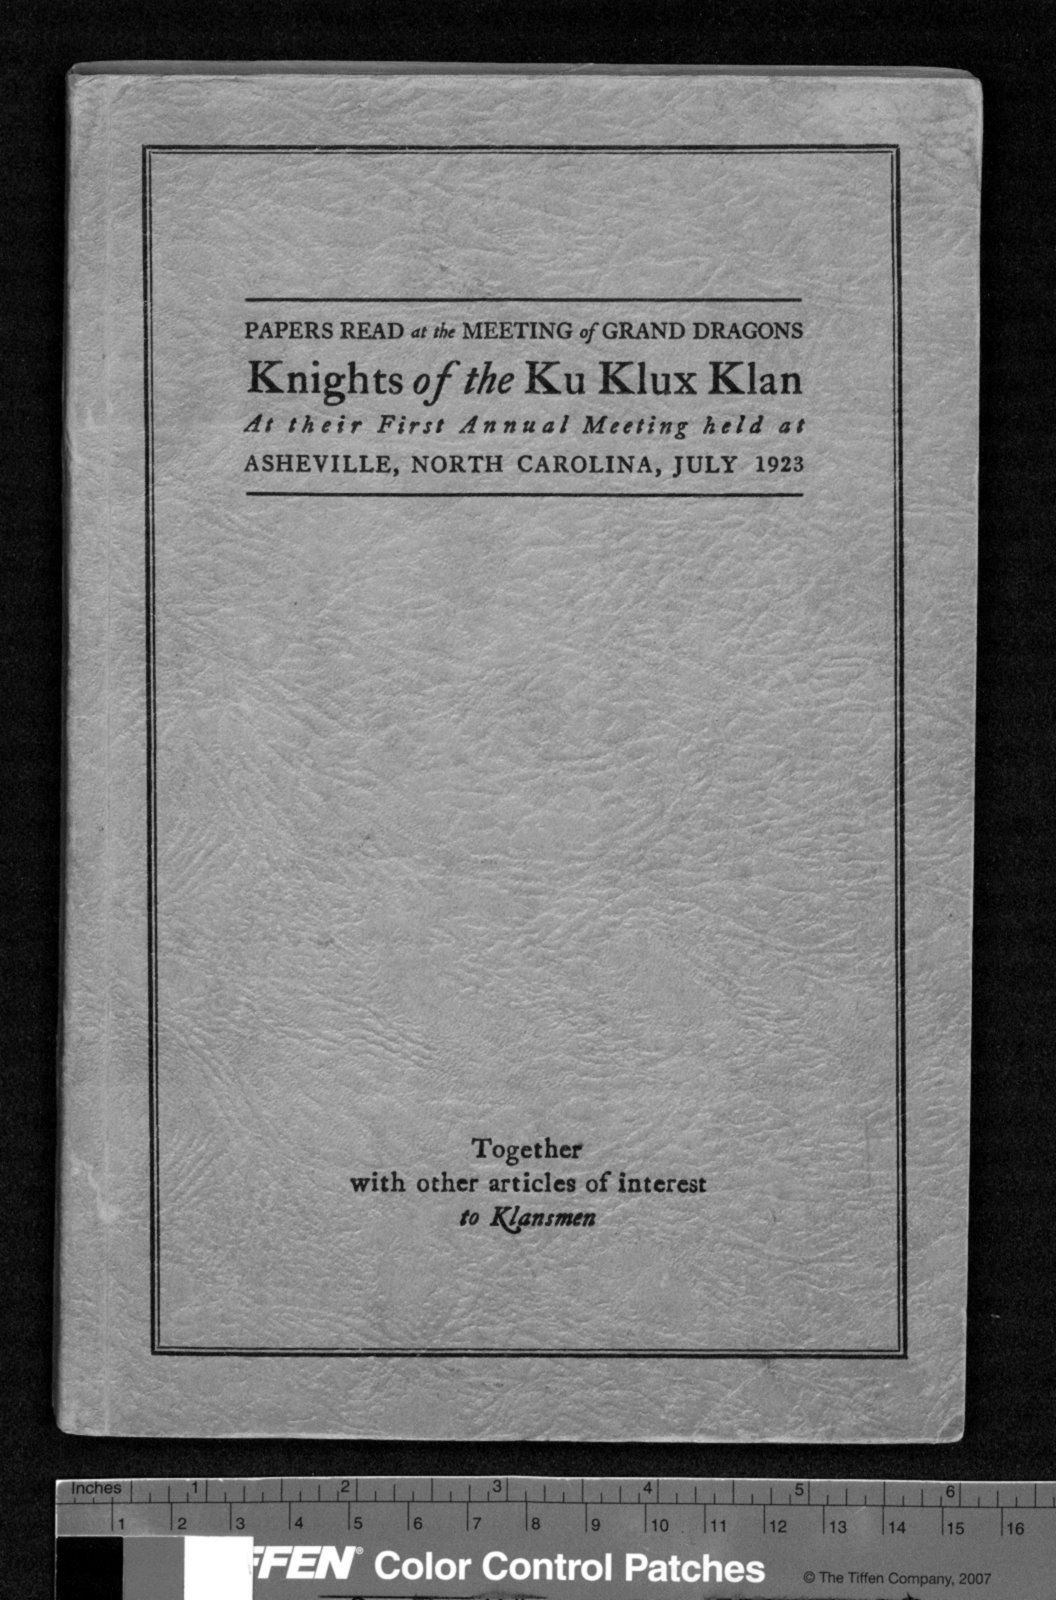 papers at the meeting of grand dragons knights of the ku  papers at the meeting of grand dragons knights of the ku klux klan at their first annual meeting held at asheville north carolina